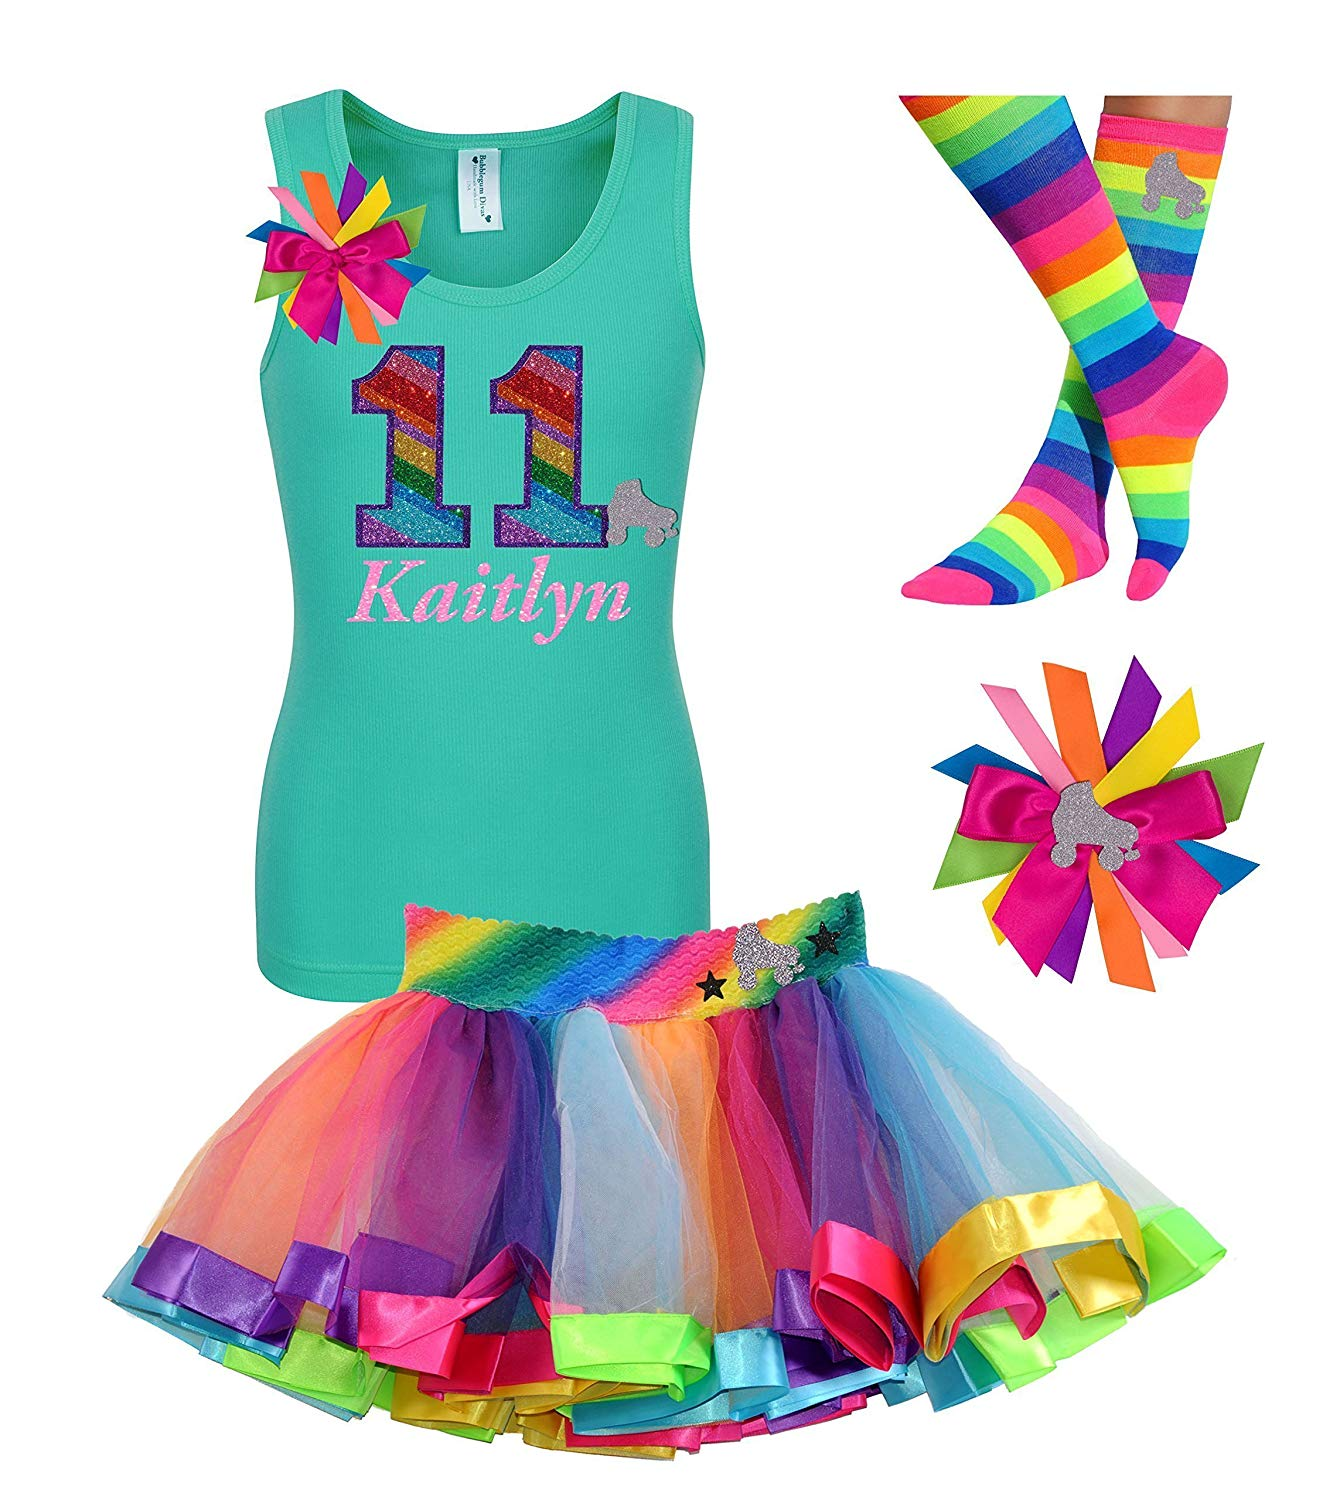 43c117c7bd54 Get Quotations · Personalized 11th Birthday Roller Skate Shirt Tutu Skirt  Rainbow Eleven Tween Girls Party Outfit 11